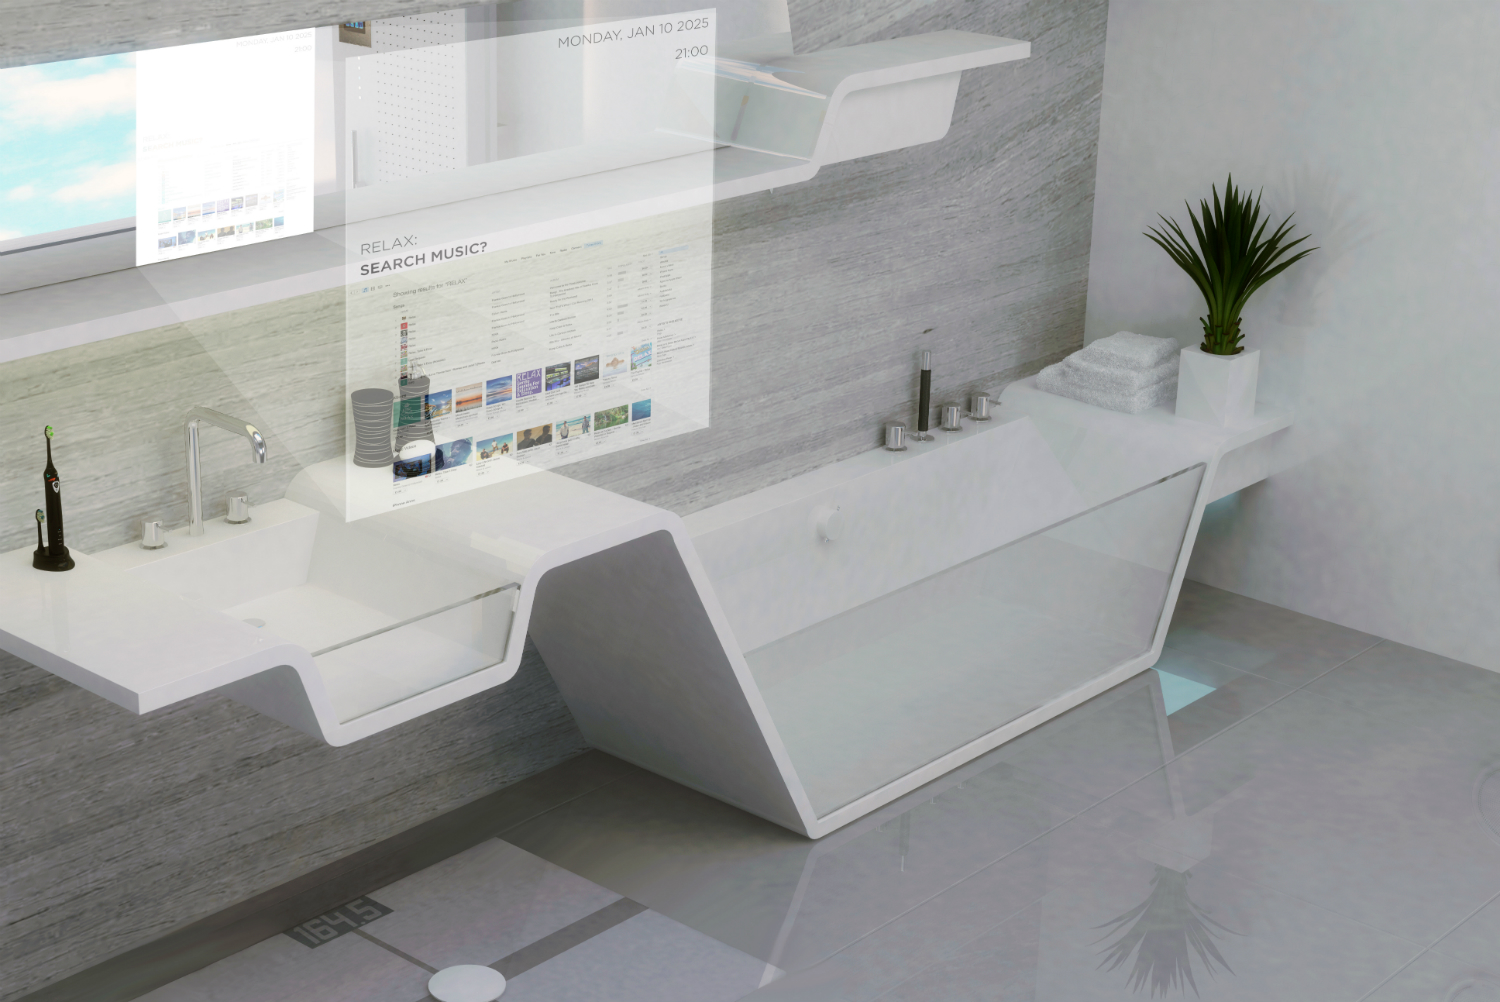 Smart Bathroom google's smart bathroom patent puts sensors in your toilet, tub